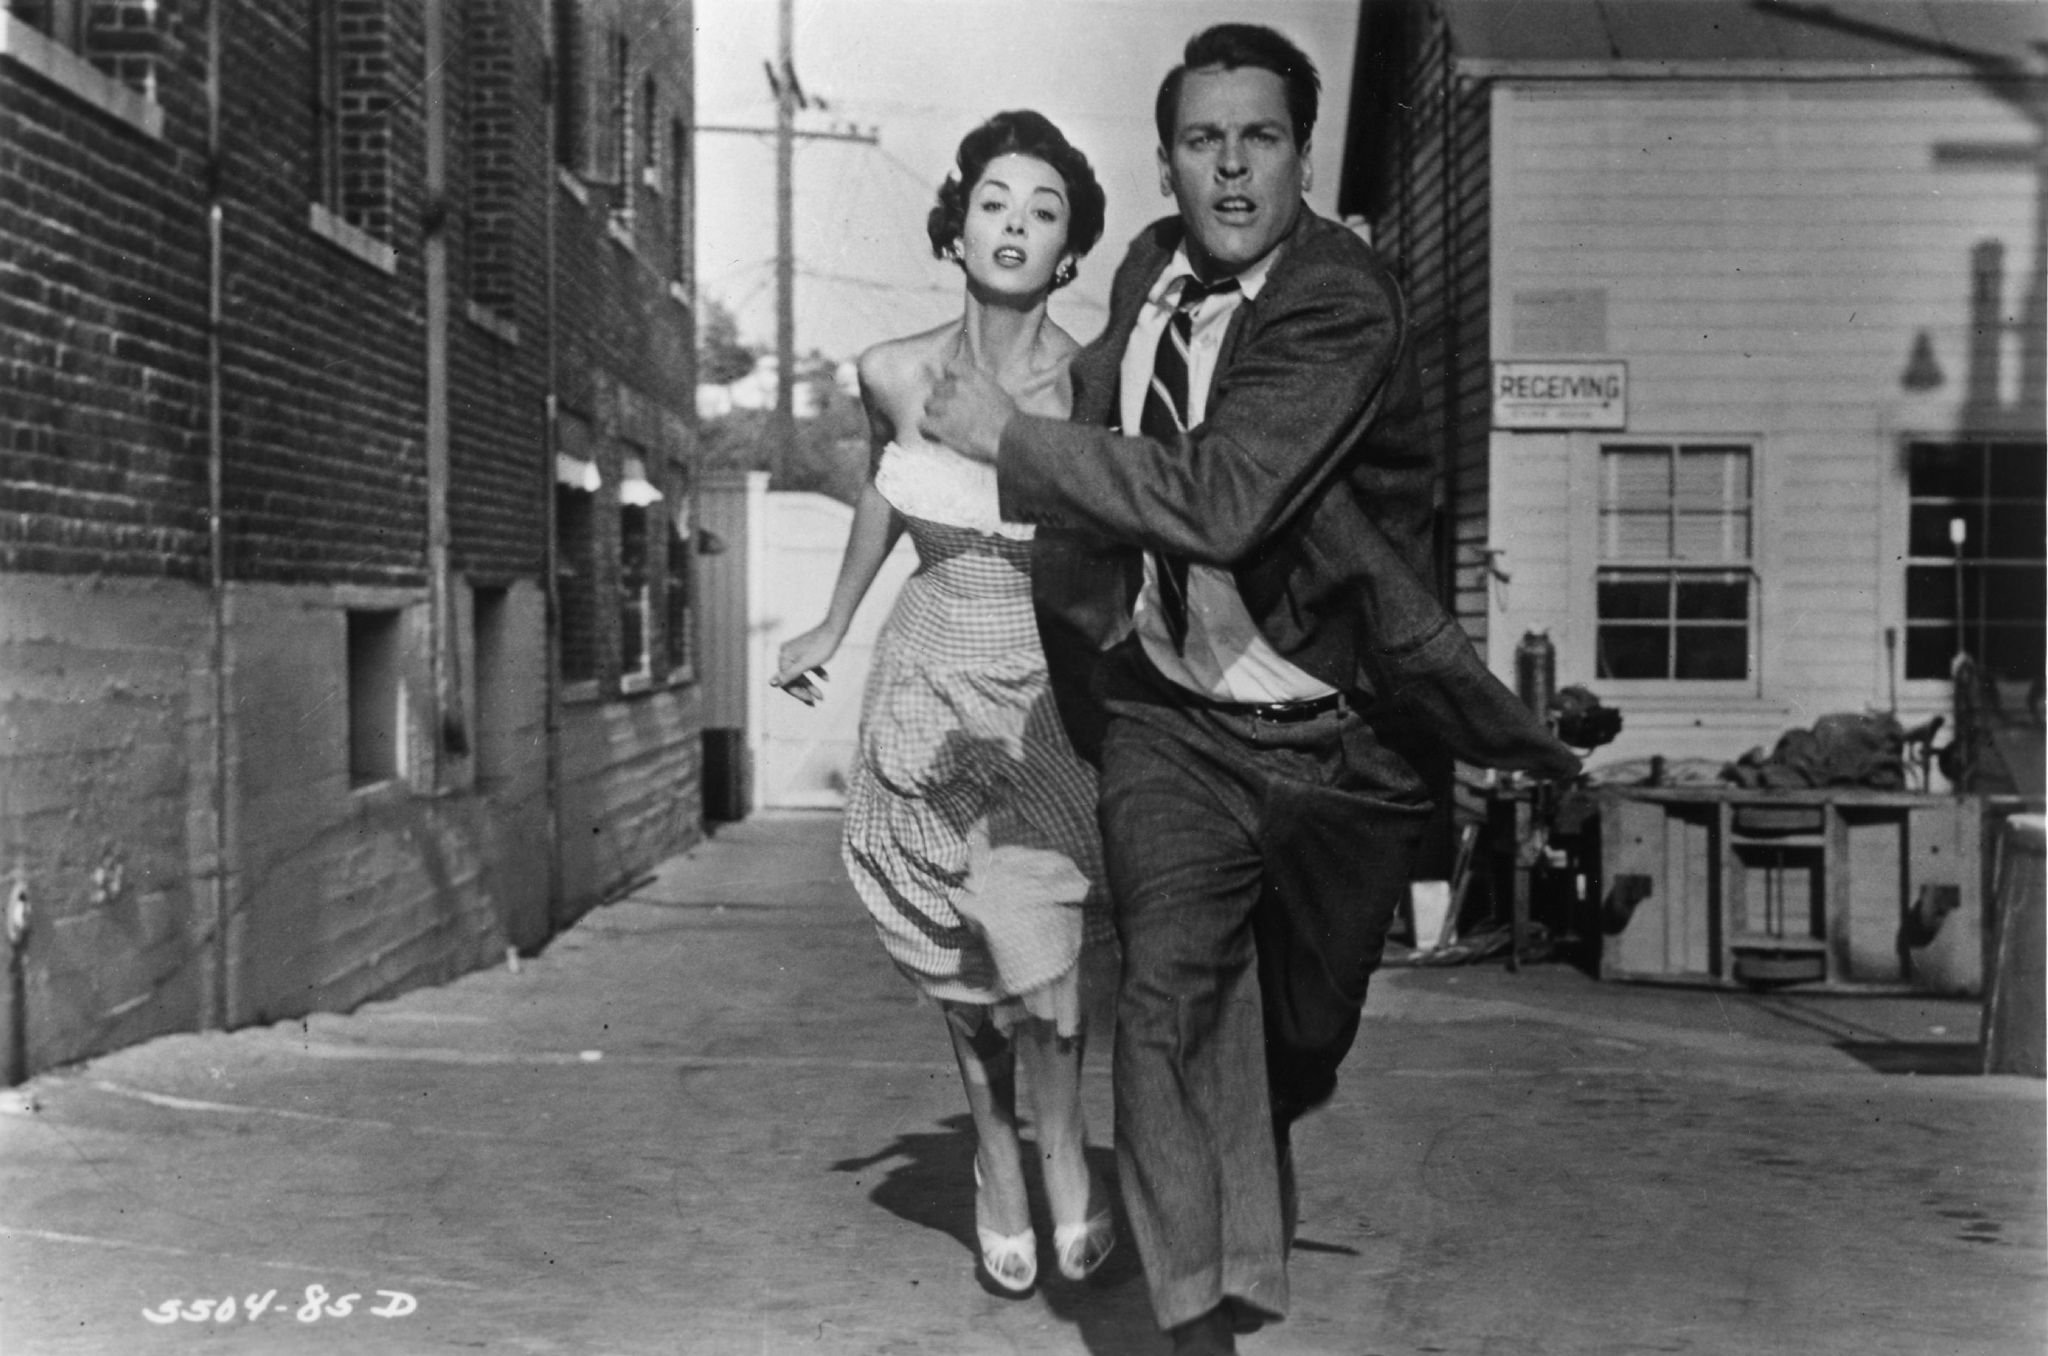 Sci-fi movie: Invasion of the Body Snatchers